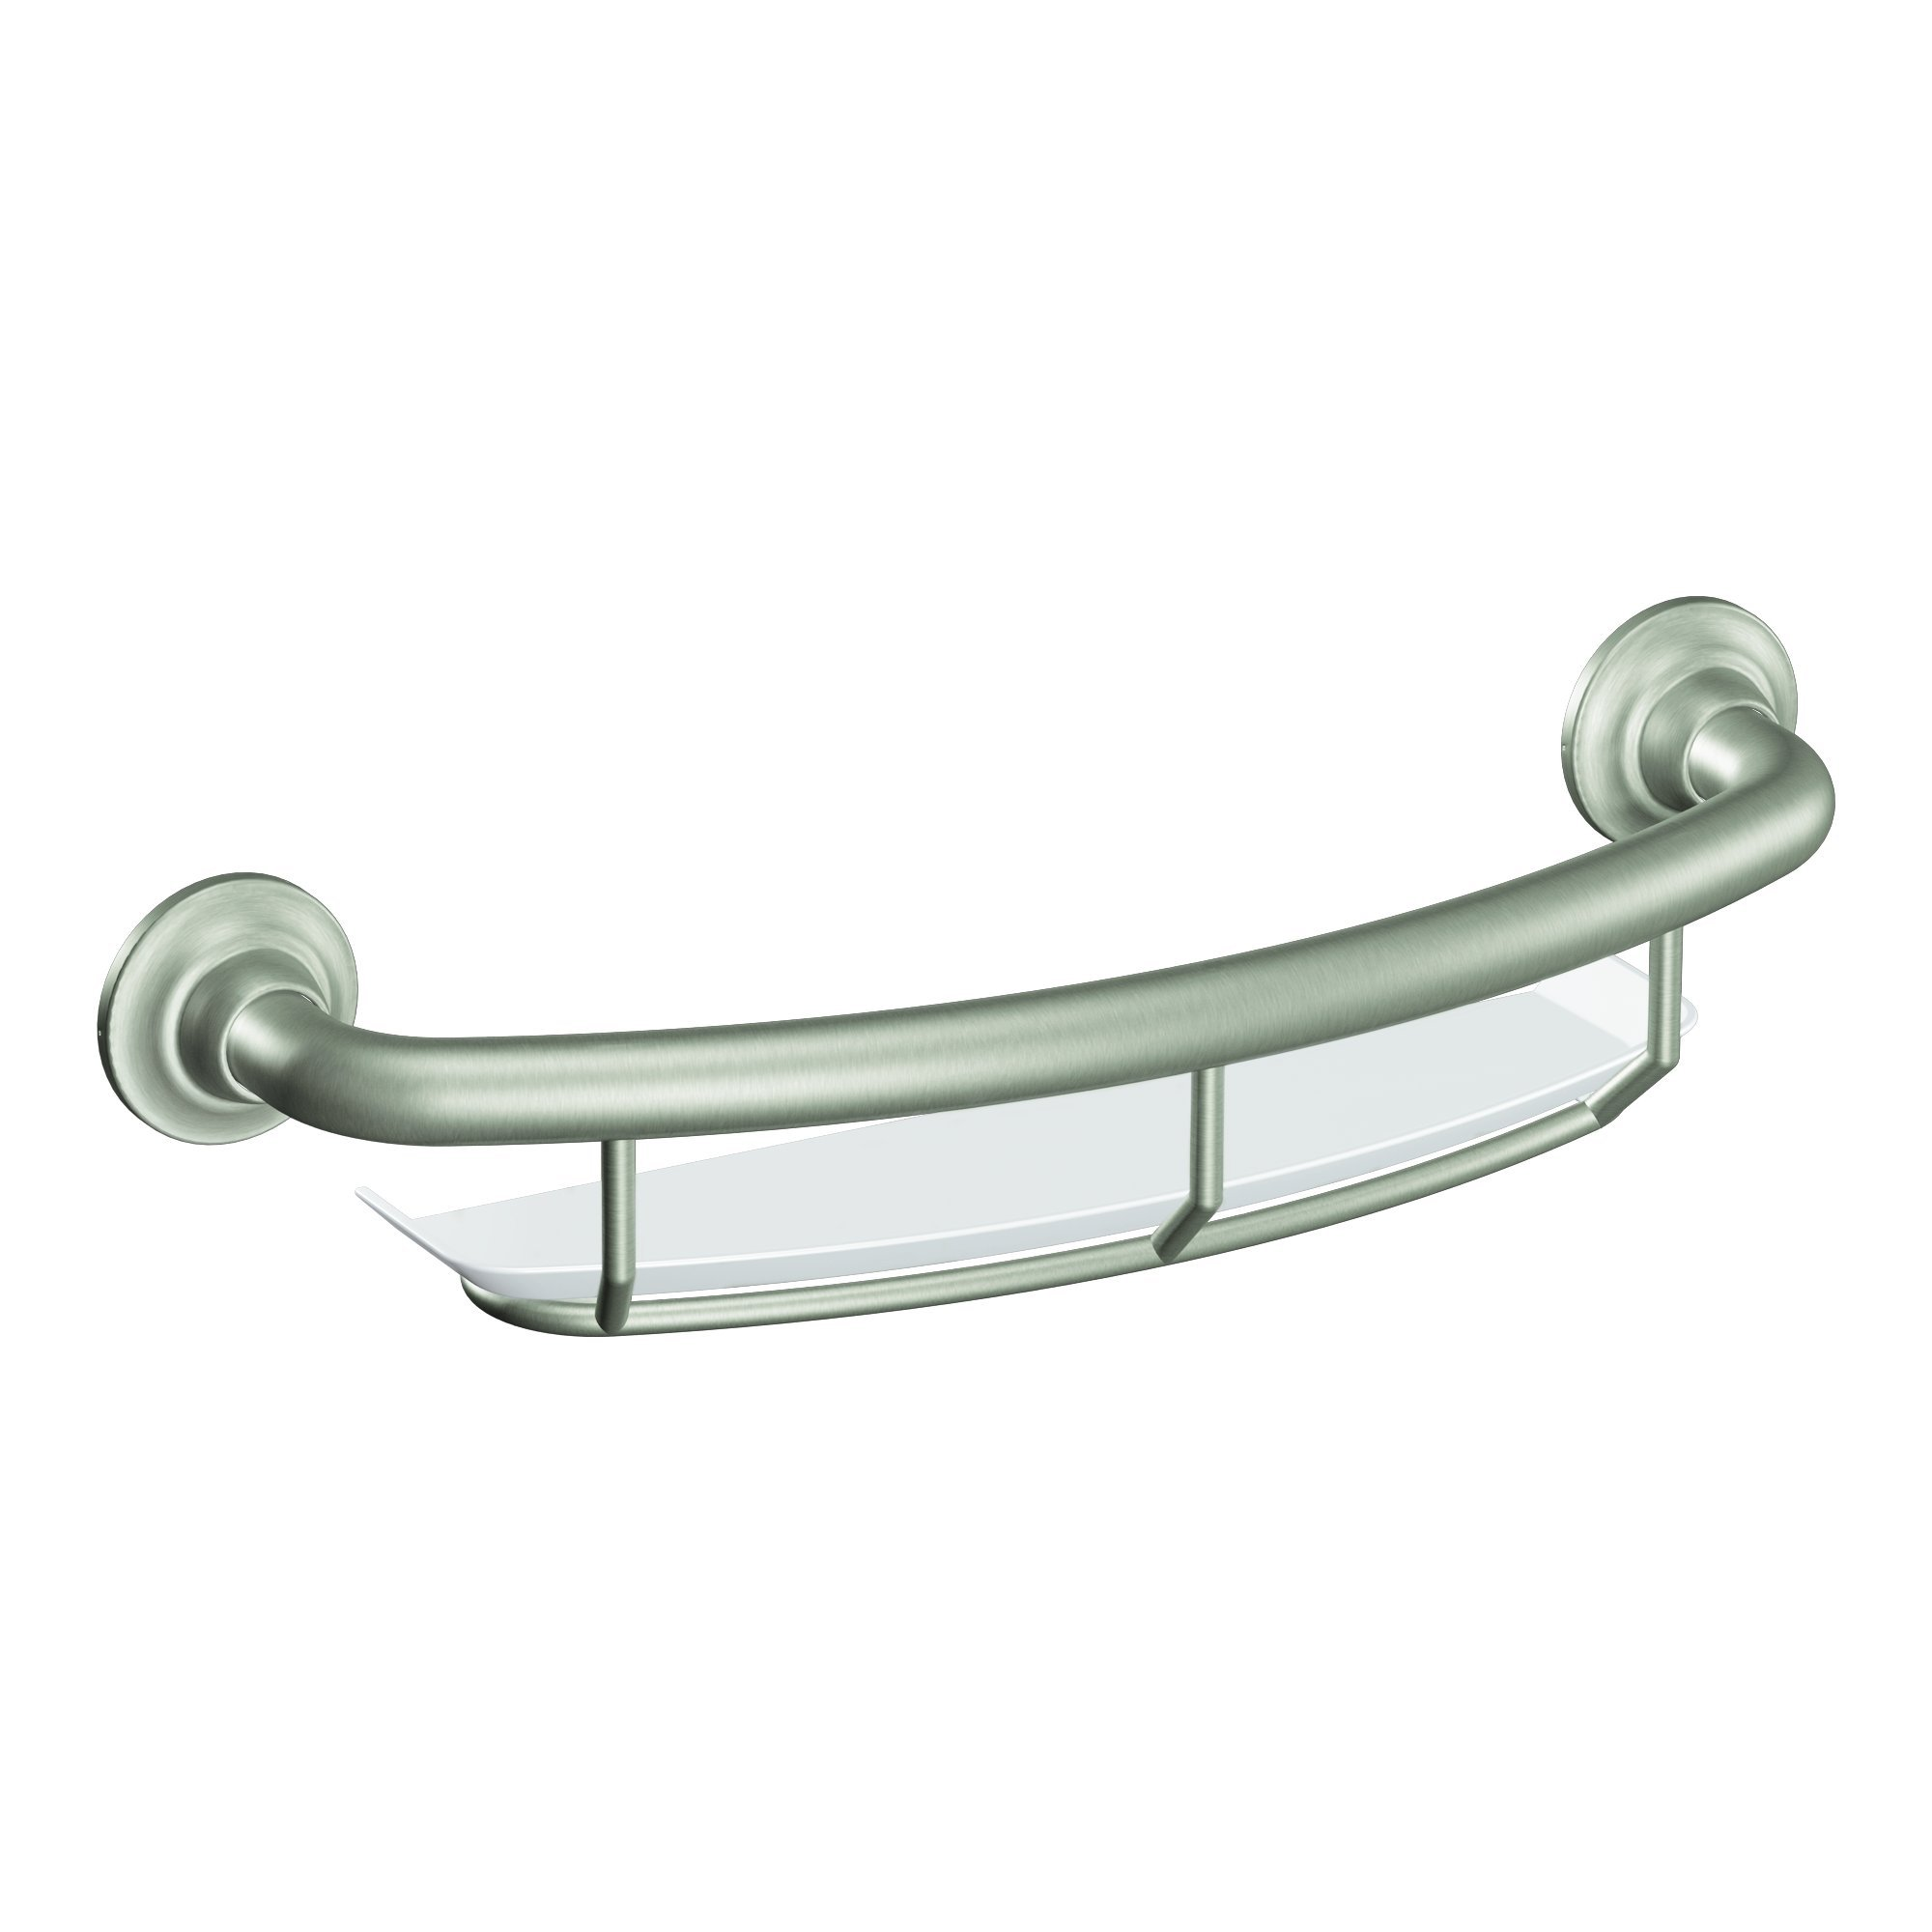 Moen R2356DBN Home Care 16 Inch Grab Bar with Shelf, Brushed Nickel